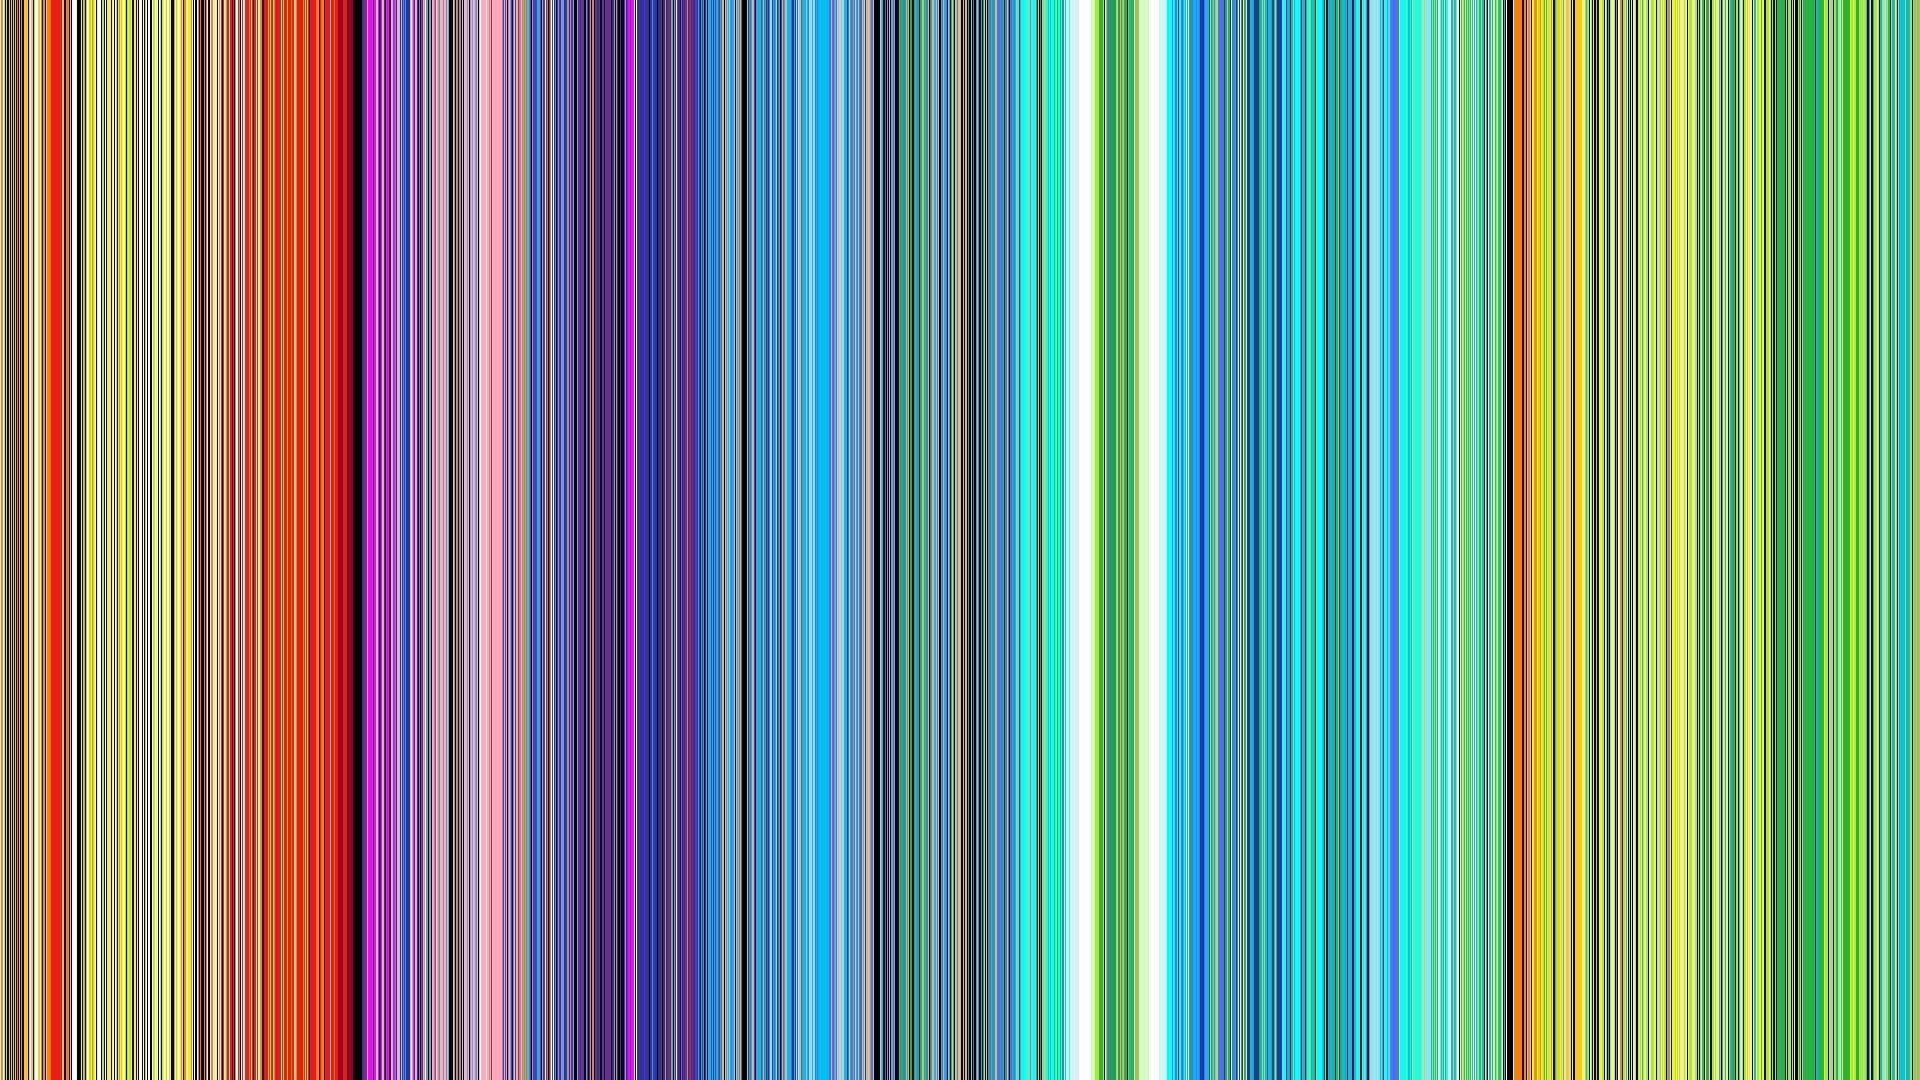 Vertical colors line plain wallpapers HD Wallpapers Rocks 1920x1080